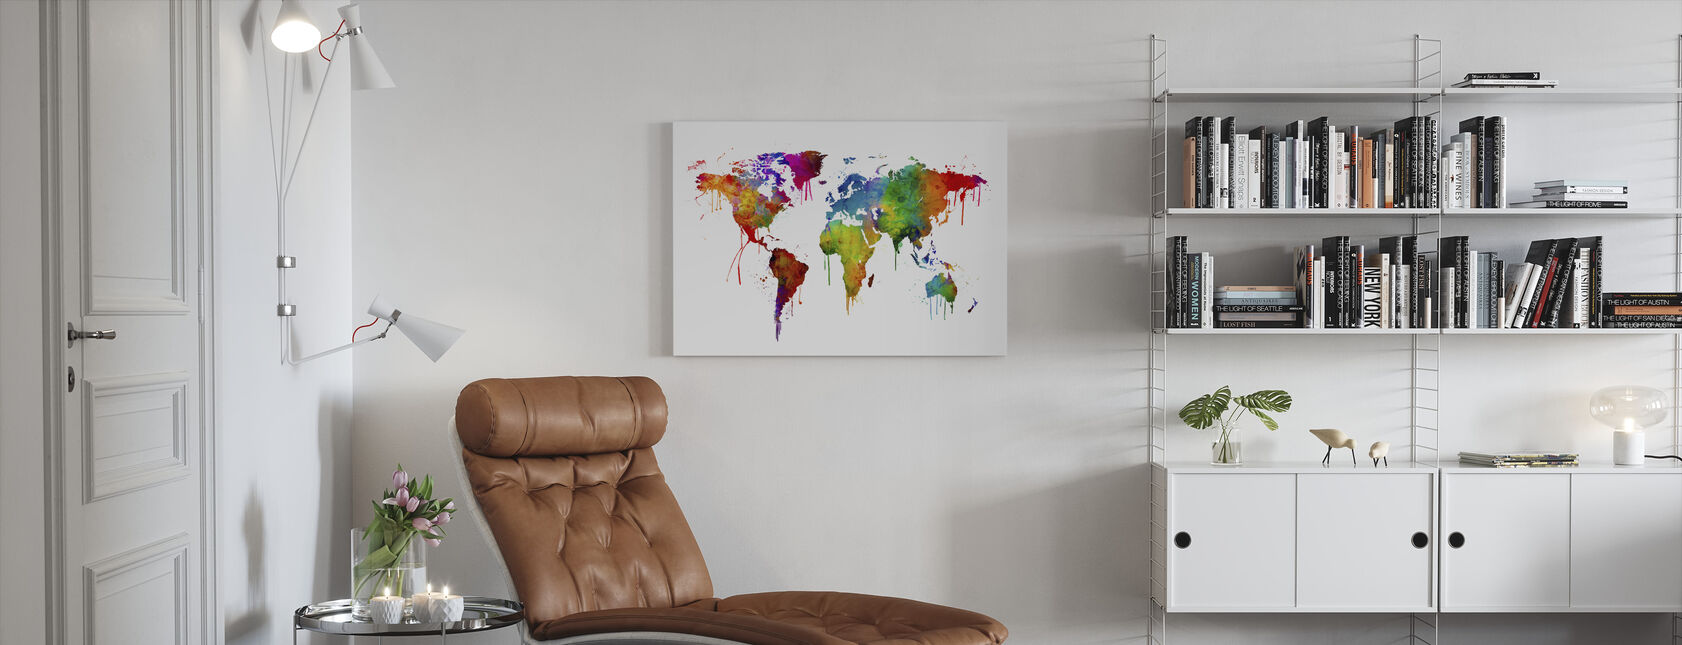 Watercolour World Map - Canvas print - Living Room